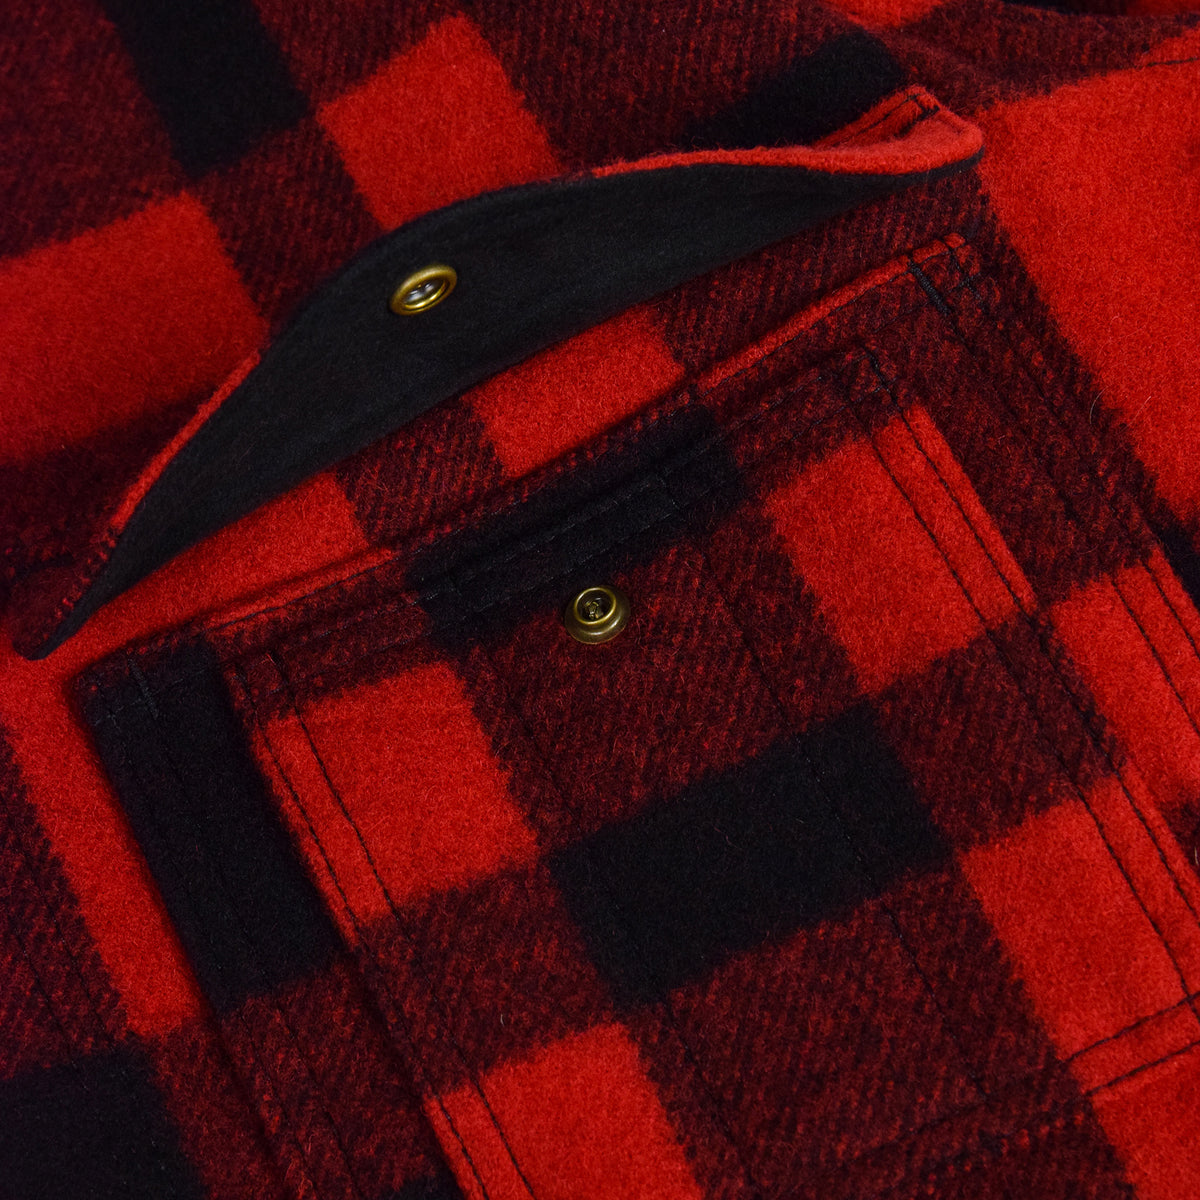 Filson Mackinaw Wool Cruiser Jacket Red Black Top Right Pocket Open